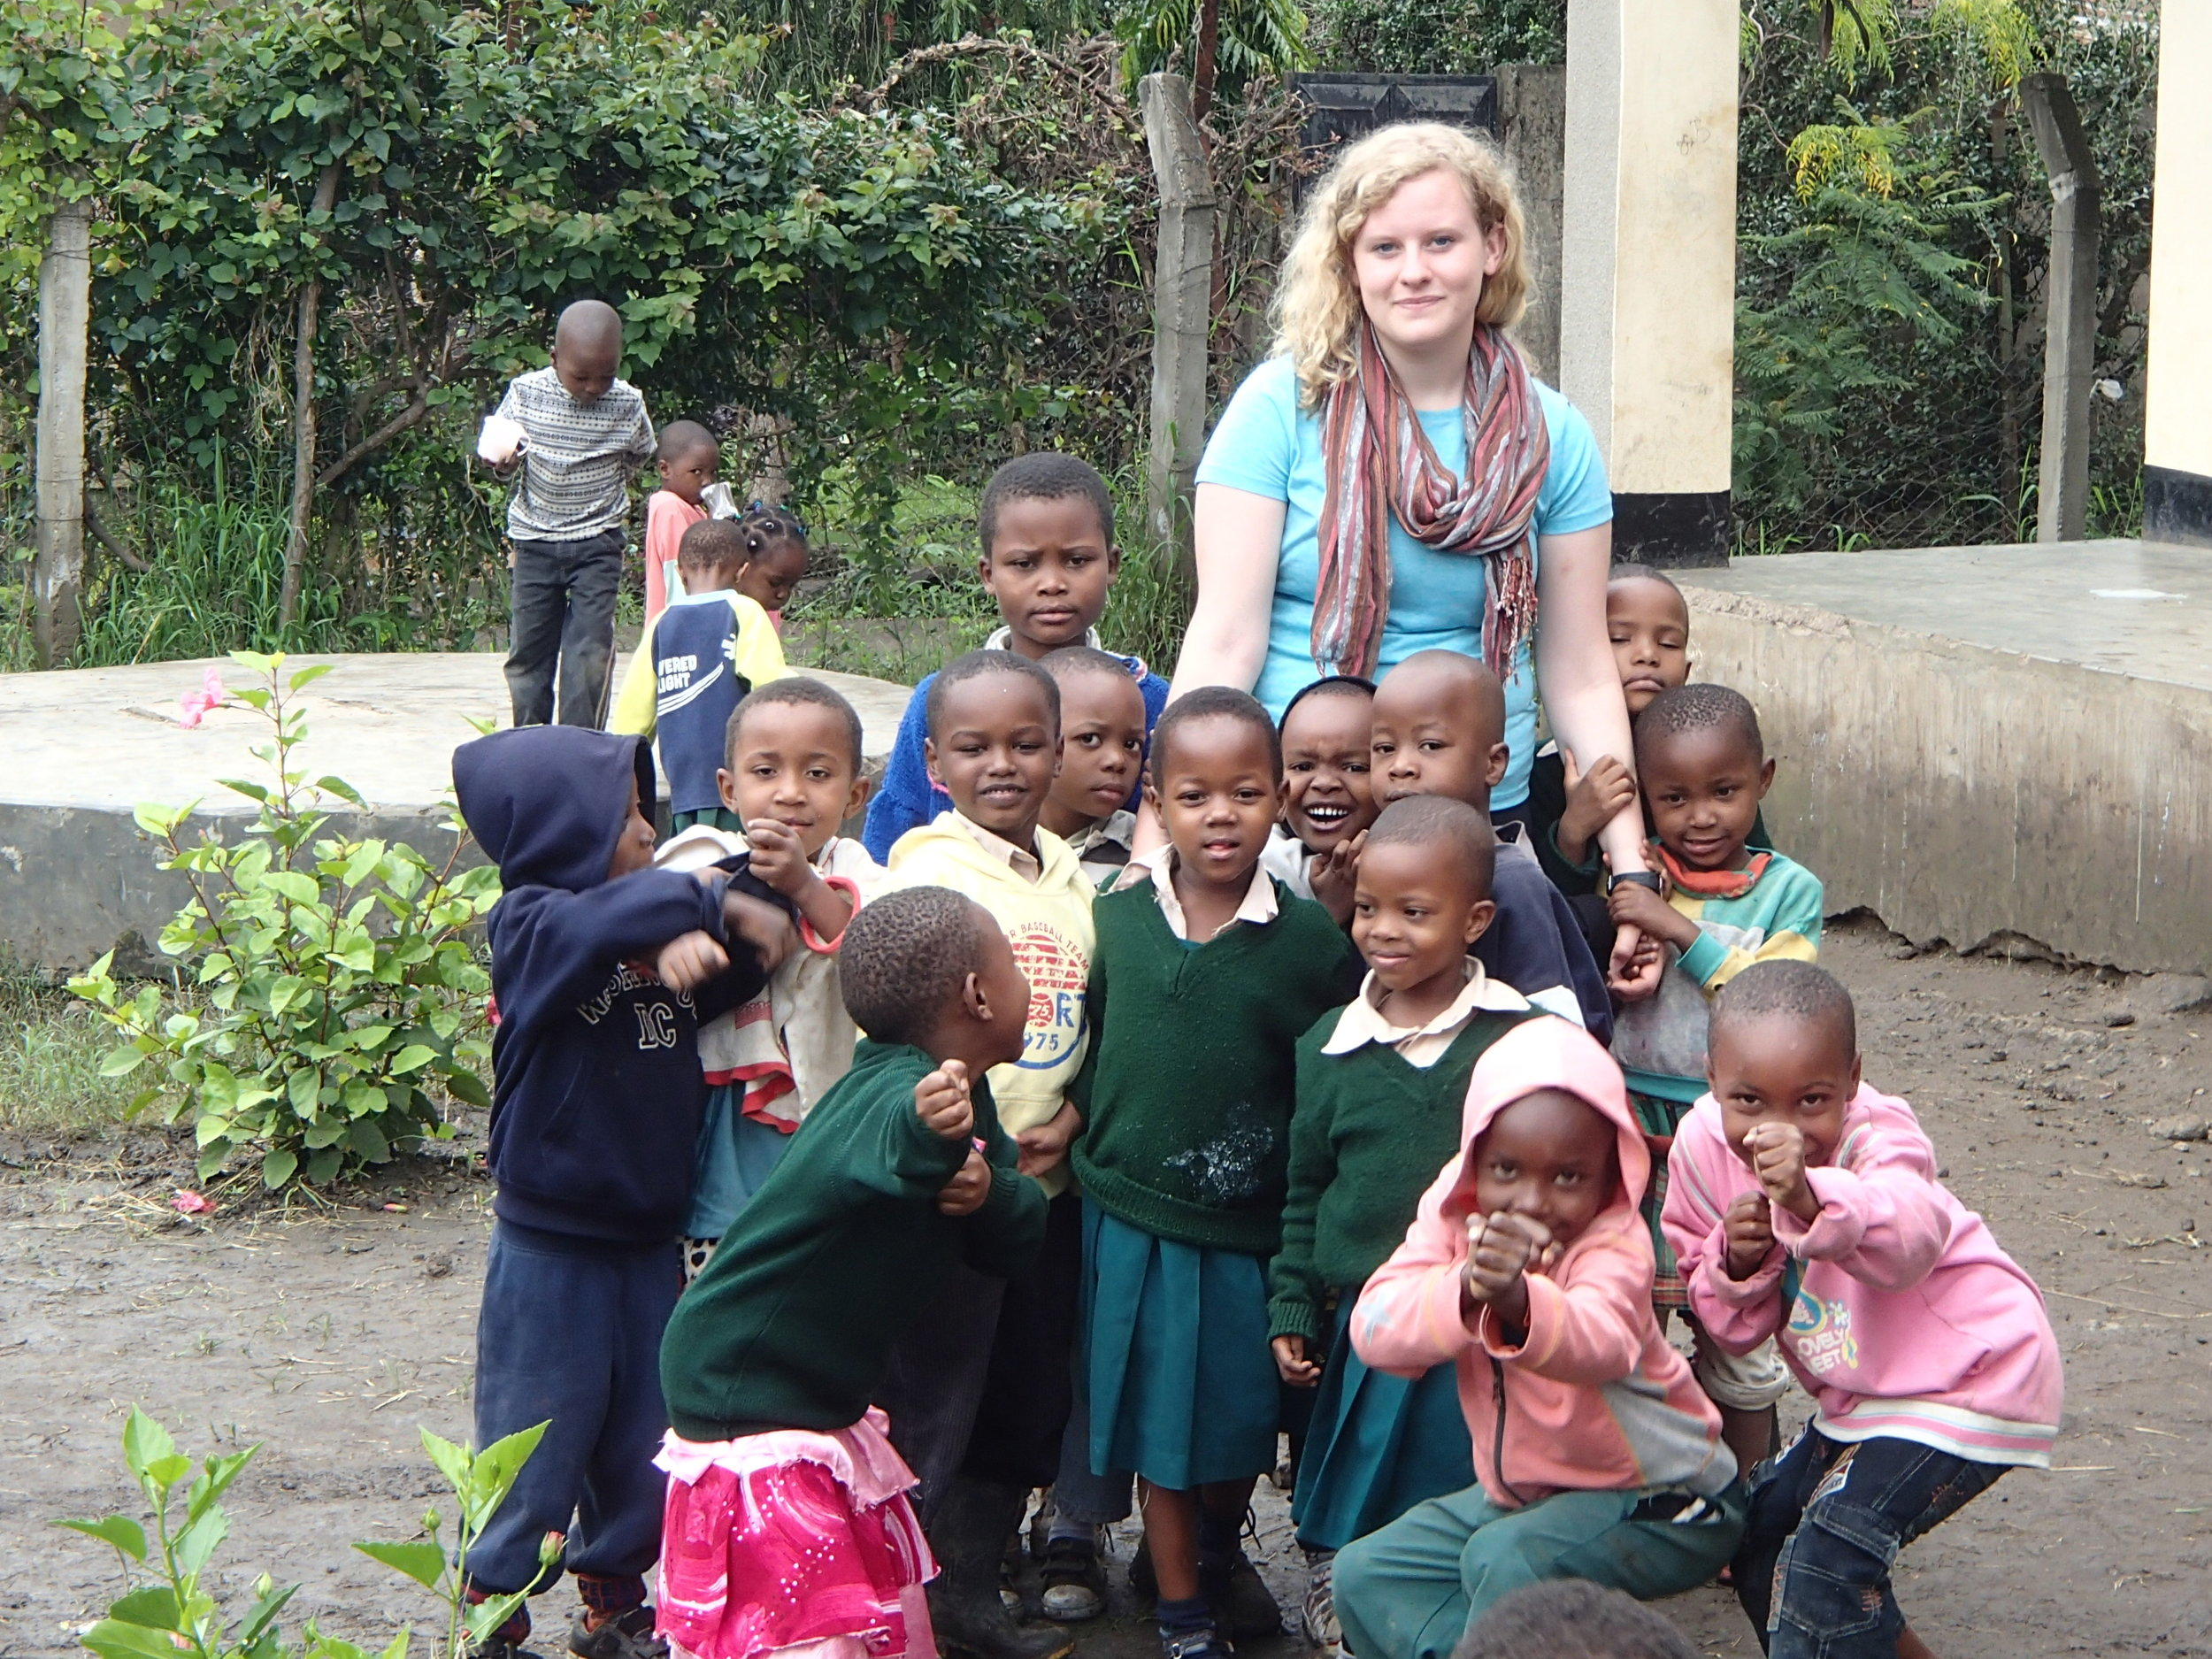 I got permission from the orphanage though.   www.afroplanfoundation.com